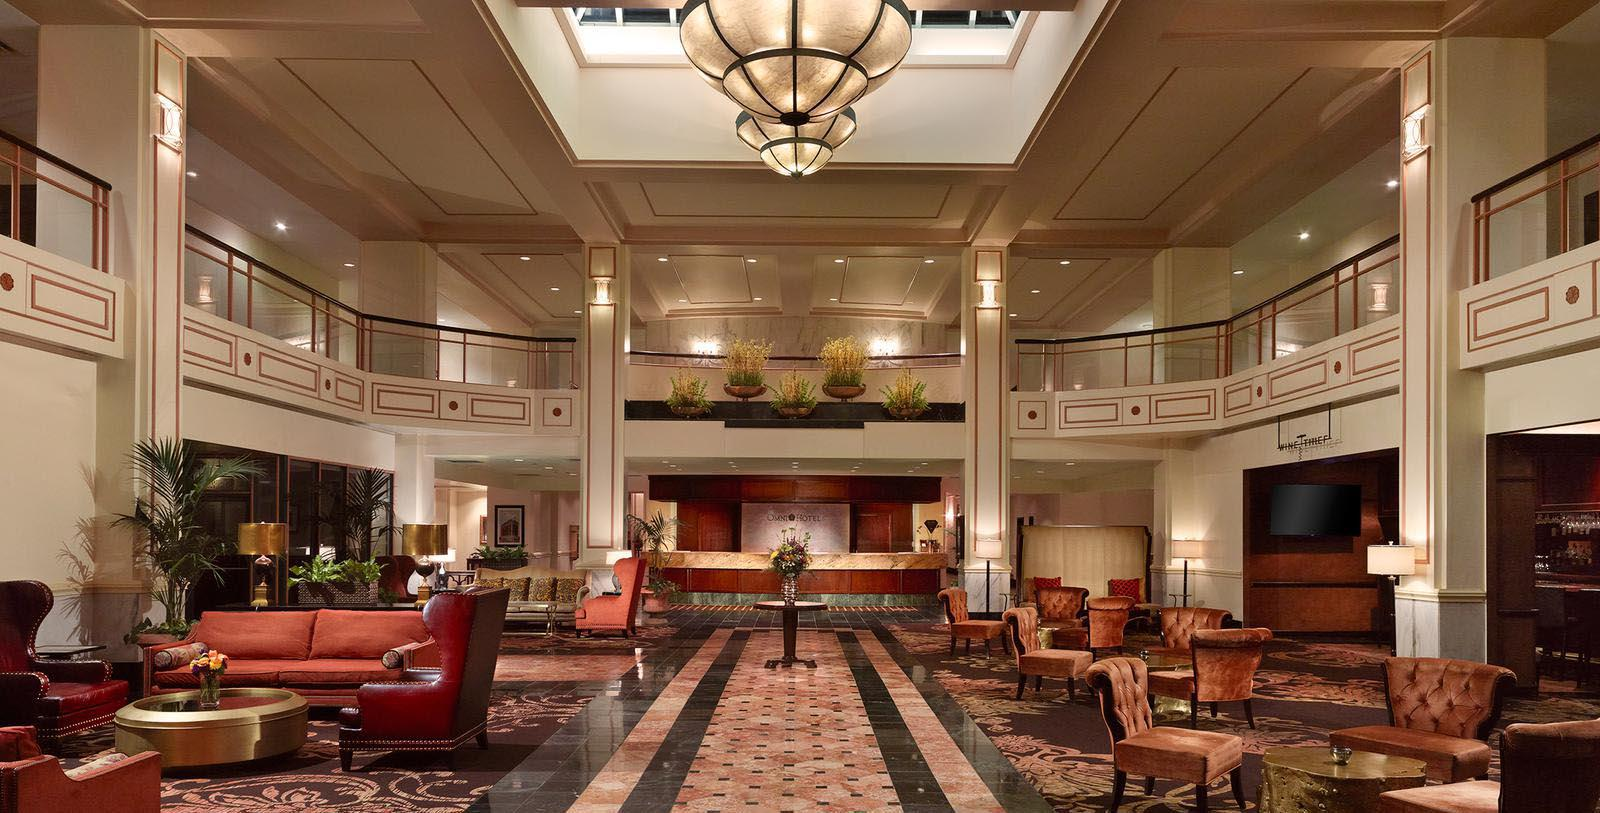 Image of Lobby Seating, Omni Severin Hotel, Indianapolis, Indiana, 1913, Member of Historic Hotels of America, Discover